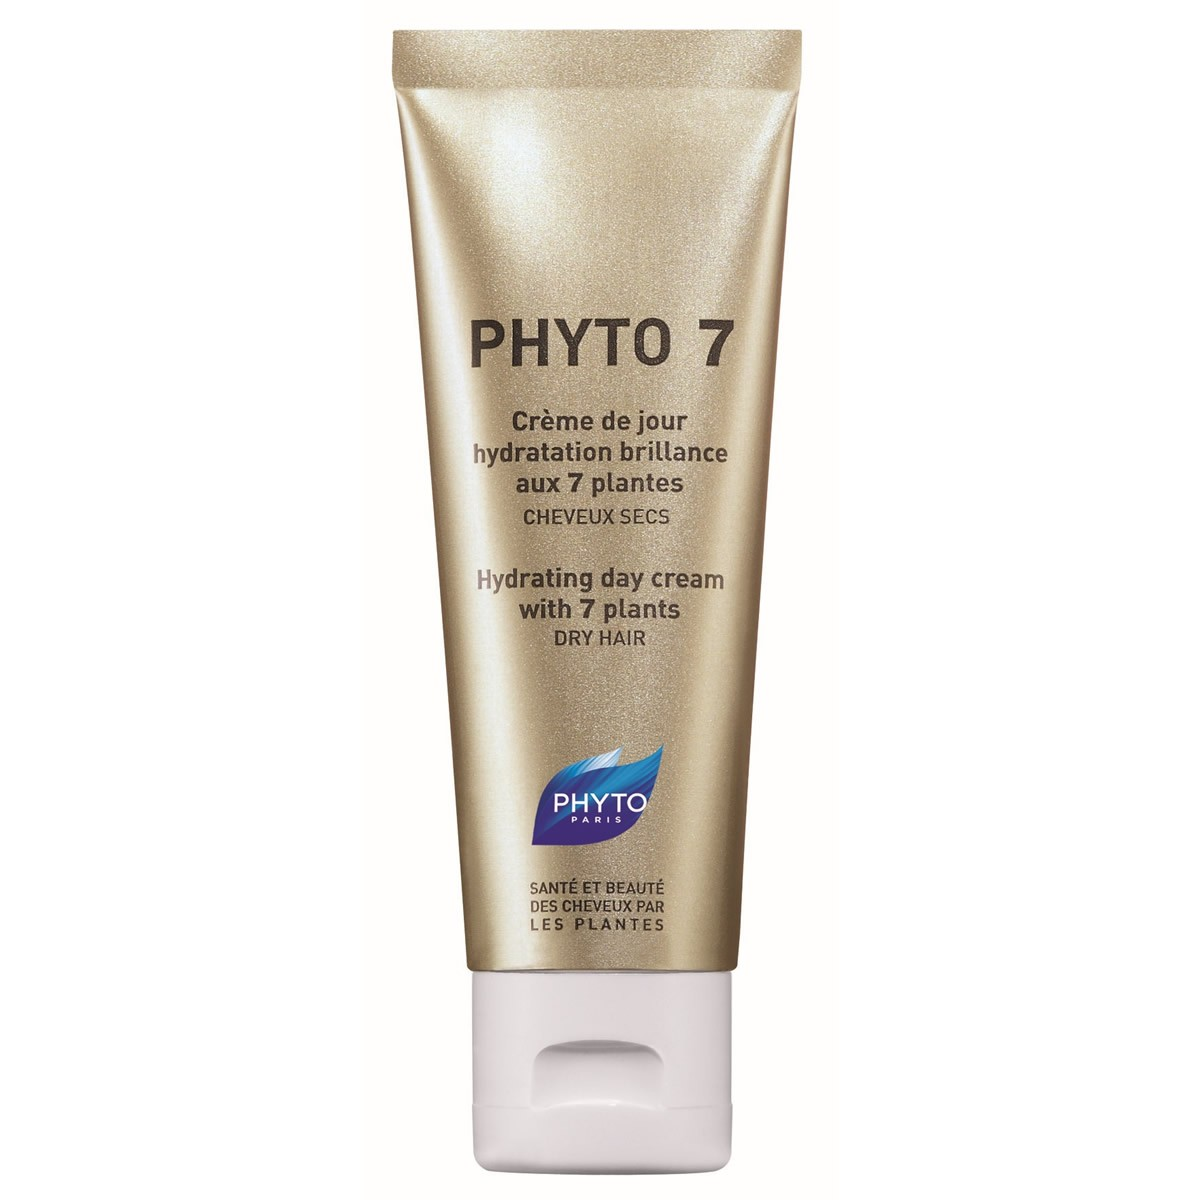 Phyto Phyto 7 Hydrating Day Cream  with 7 Plants